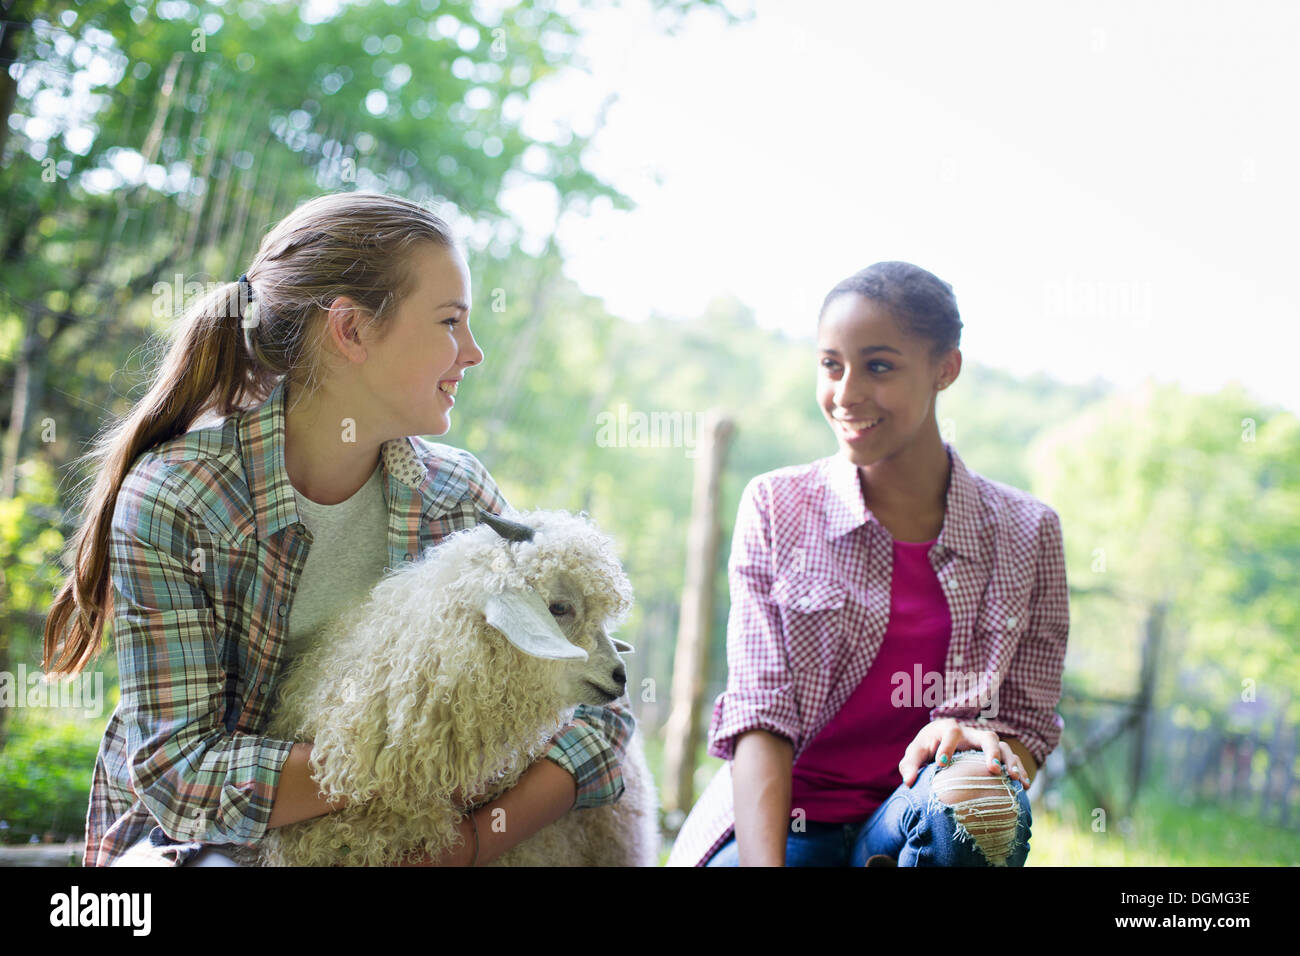 Two young girls on the farm, outdoors. one with her arms around a very fluffy haired angora goat. - Stock Image